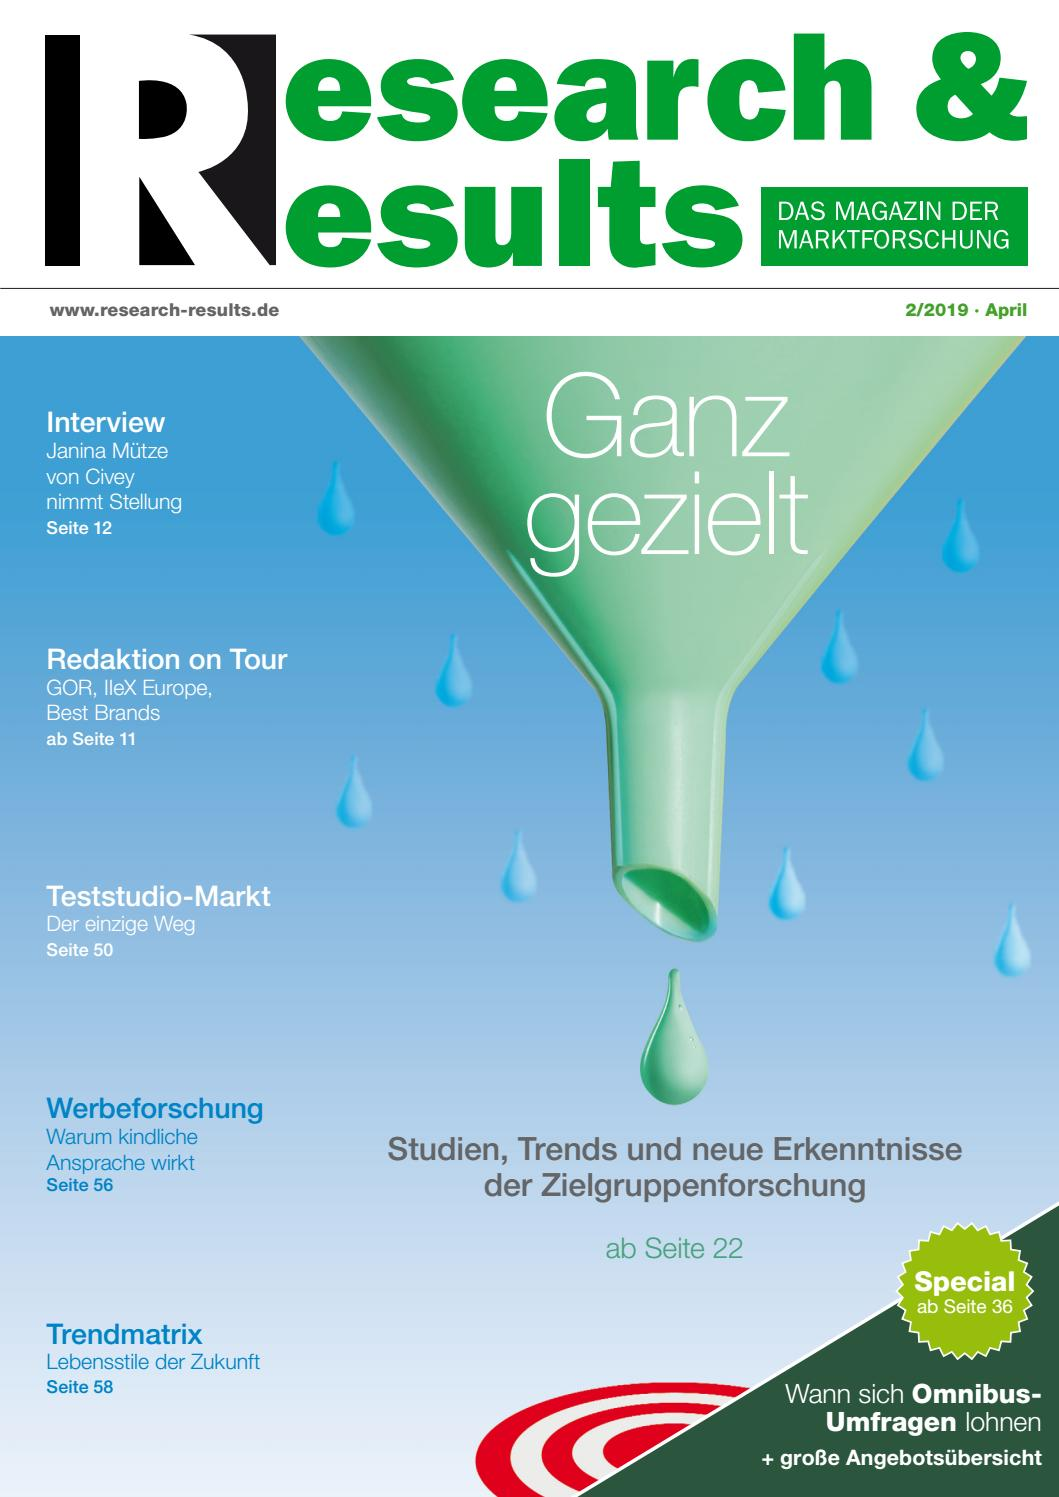 Research & Results 25/25019 by Research & Results   issuu